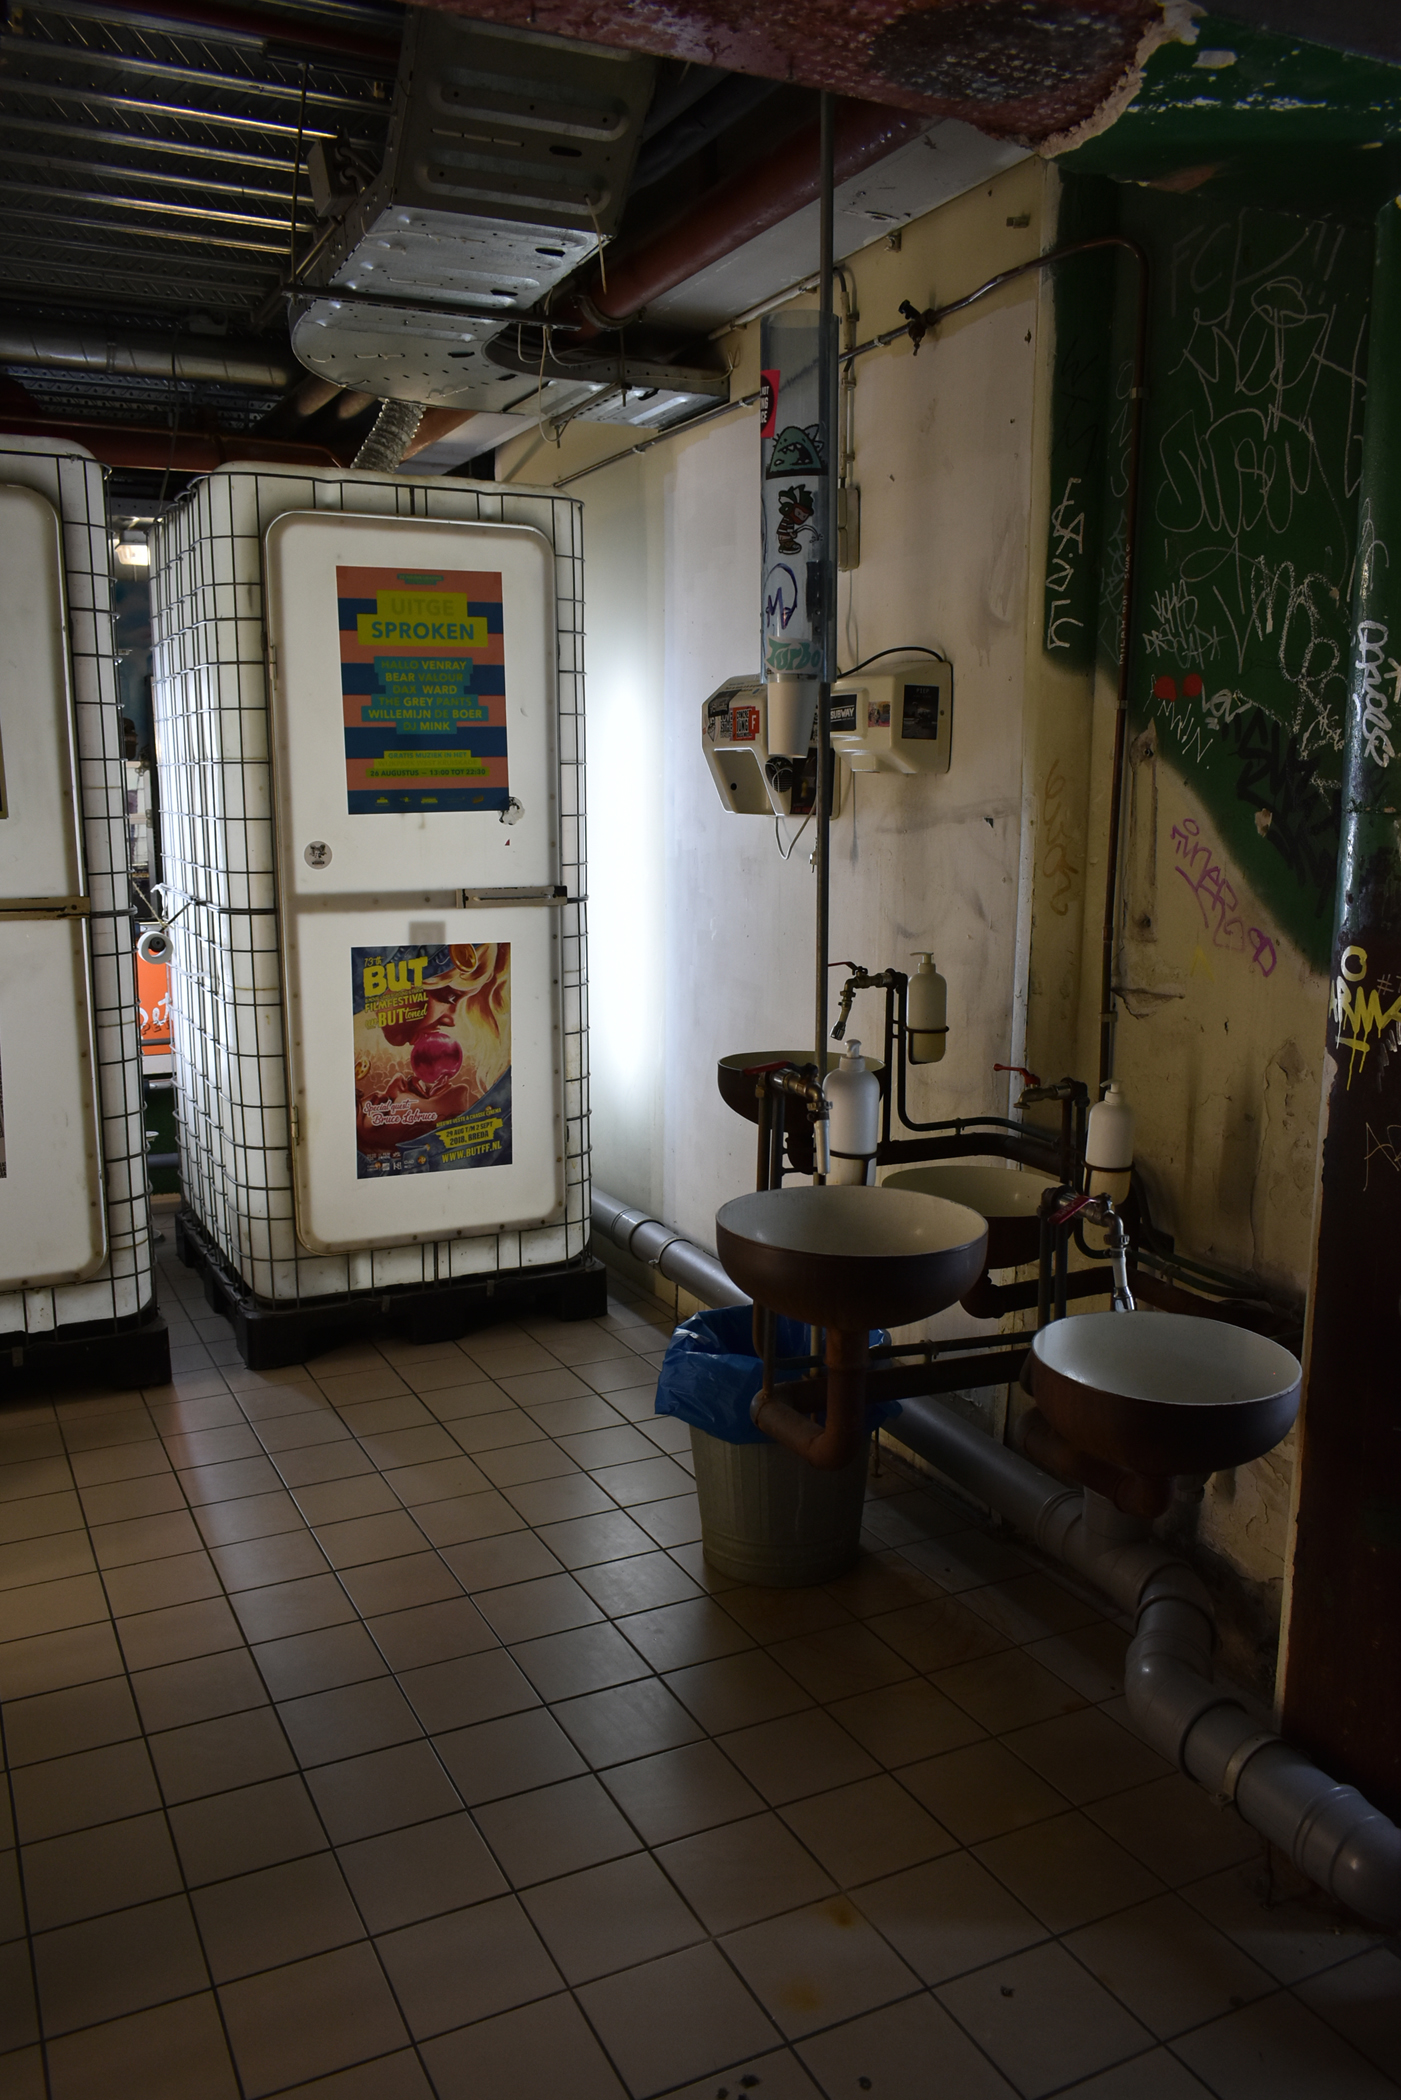 Industrial style toilets in a Rotterdam bar.